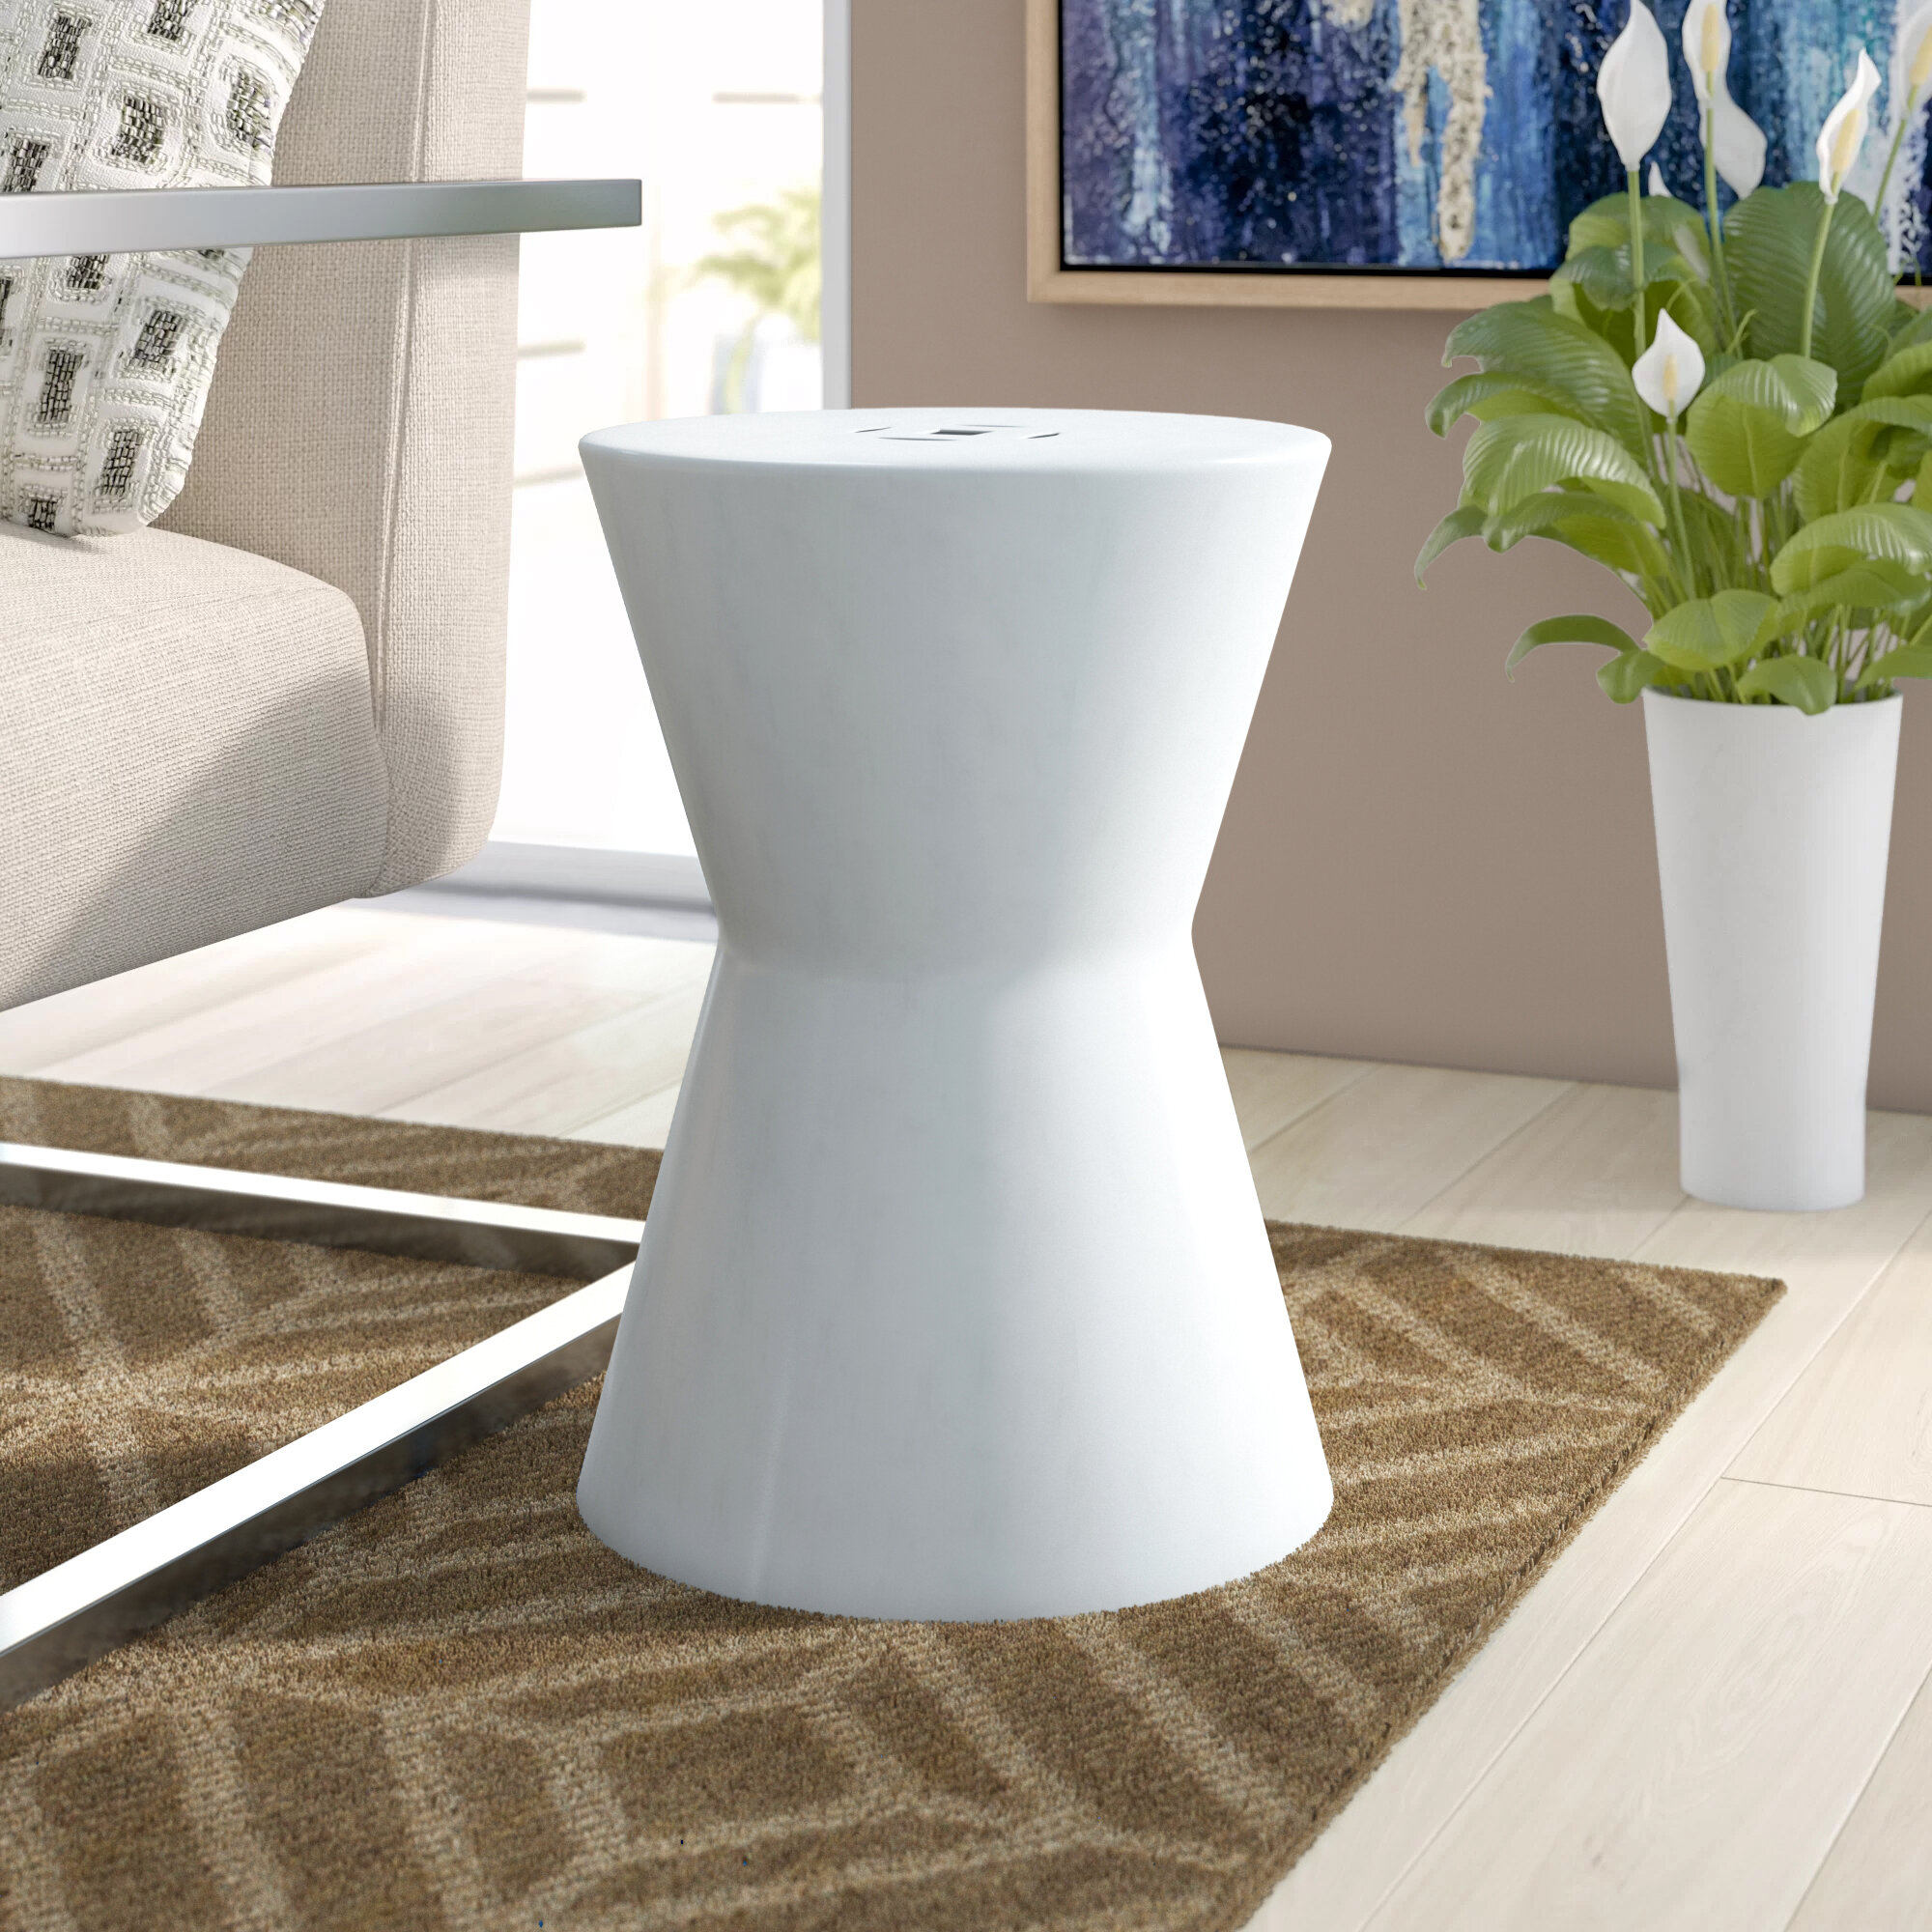 Featured Image of Karlov Ceramic Garden Stools